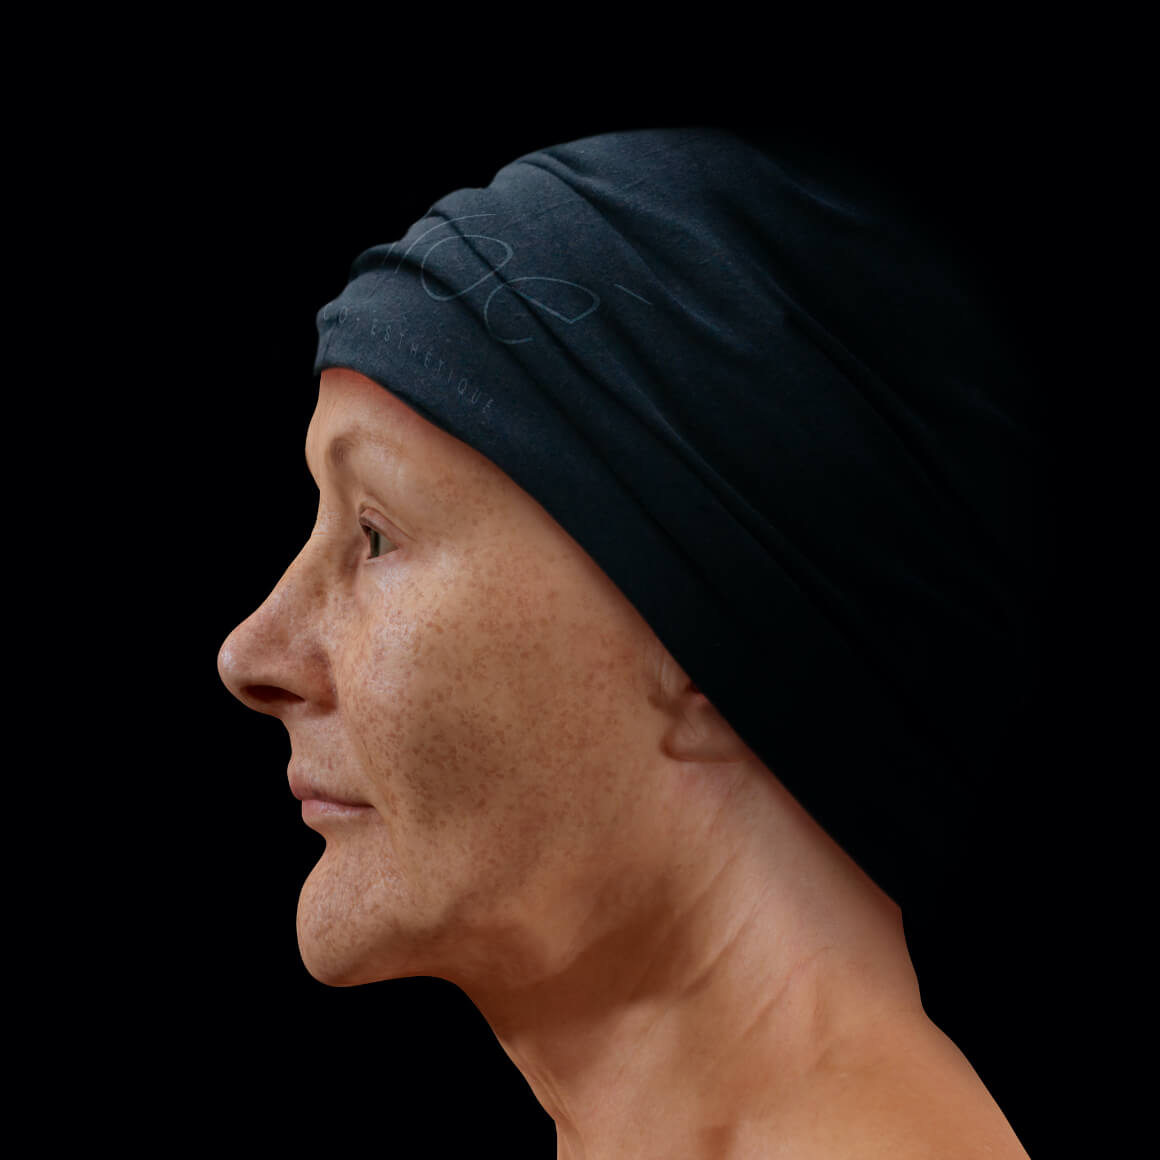 A female patient from Clinique Chloé positioned sideways with pigmented lesions, or dark spots, on her entire face